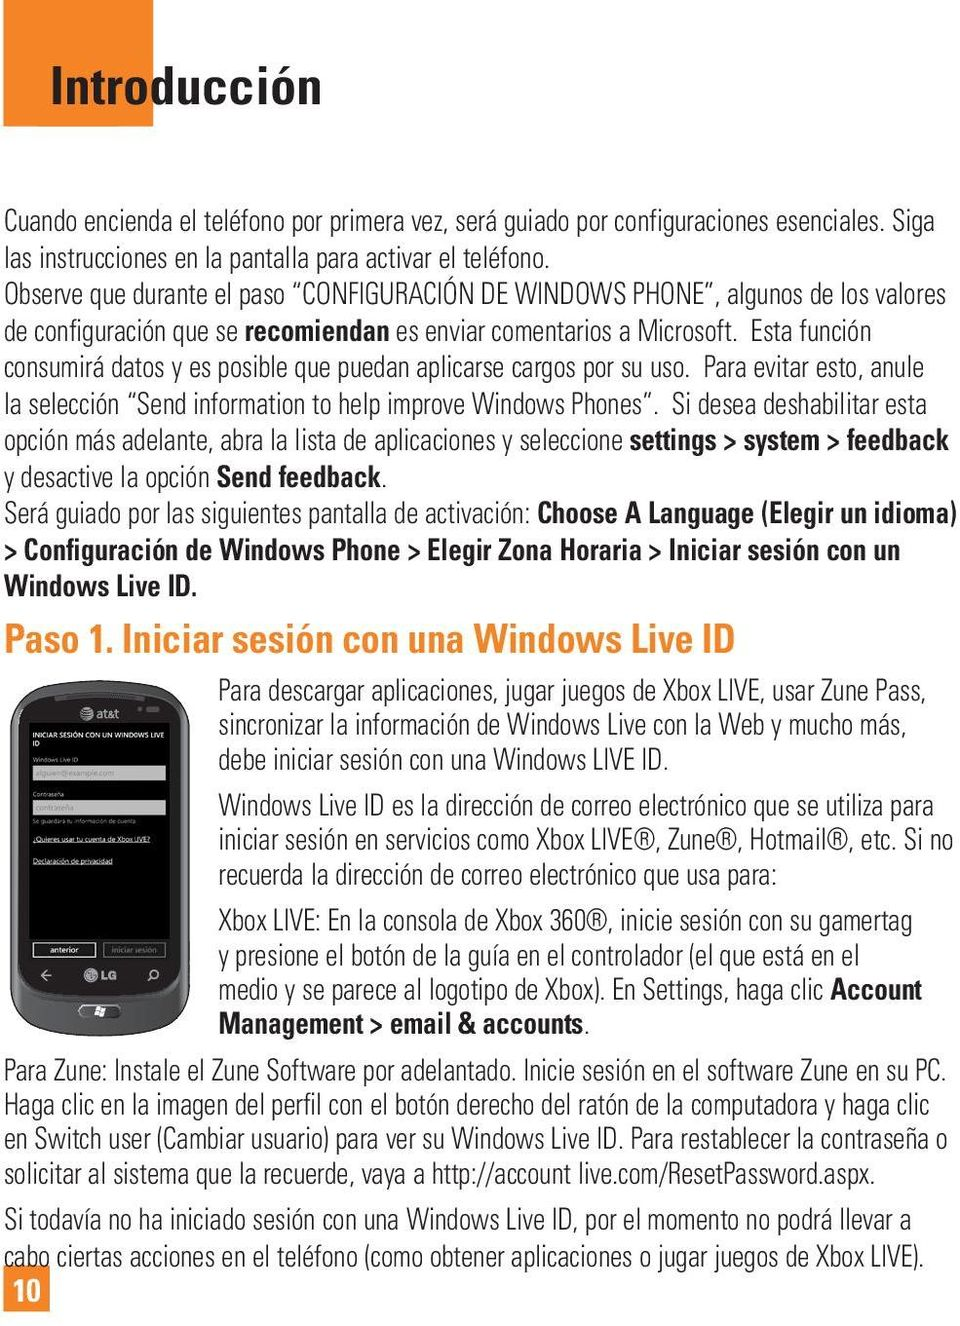 Esta función consumirá datos y es posible que puedan aplicarse cargos por su uso. Para evitar esto, anule la selección Send information to help improve Windows Phones.